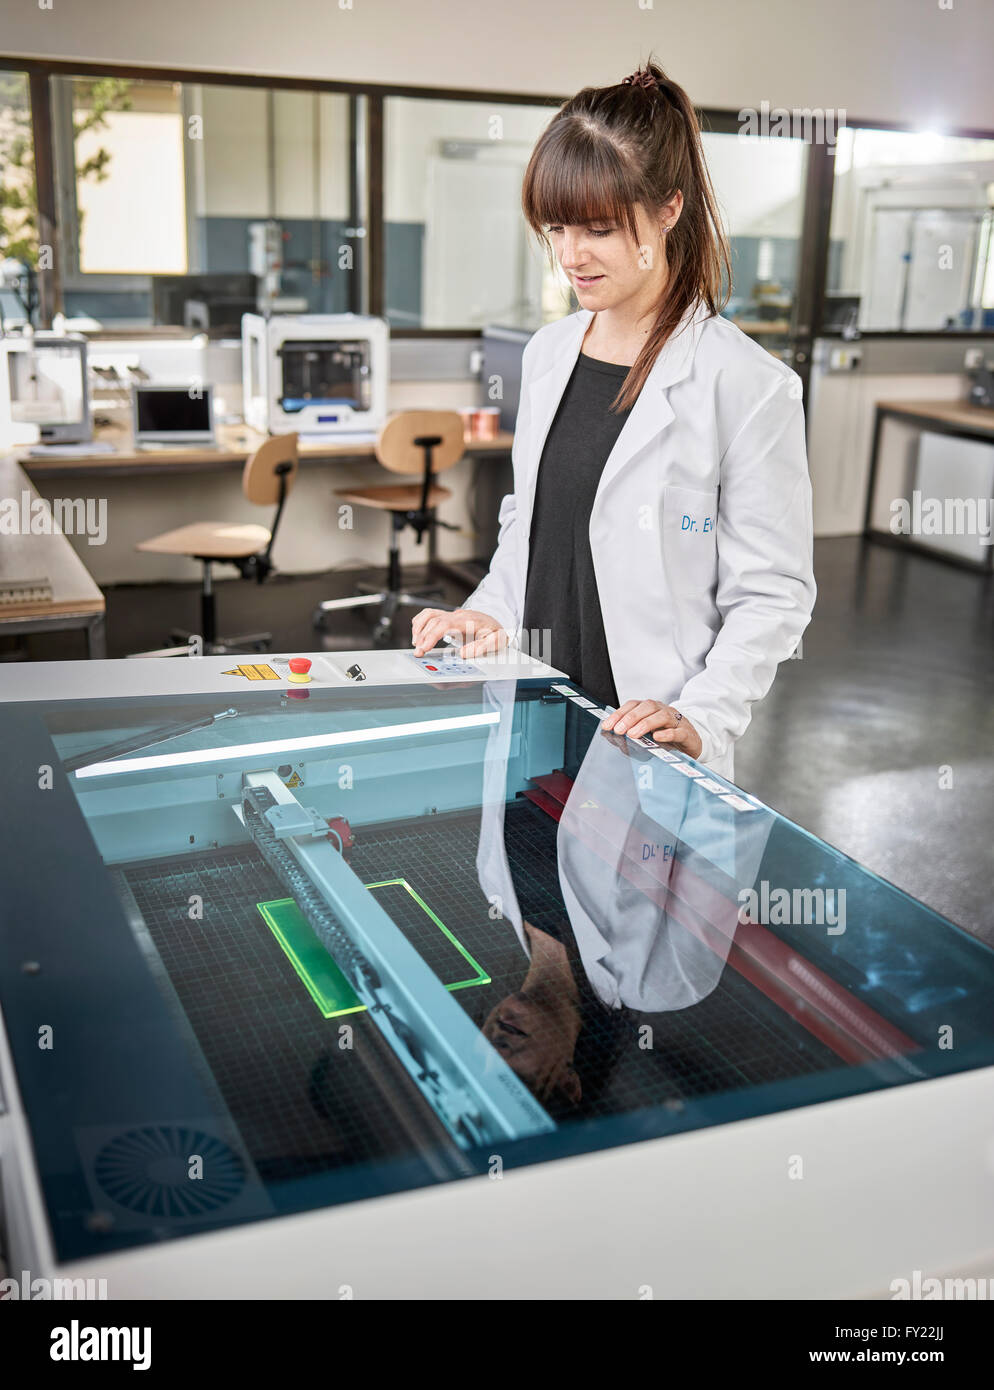 Female technician, 20-25 years, with a white lab coat, using a laser cutter in an electronics laboratory, Wattens - Stock Image